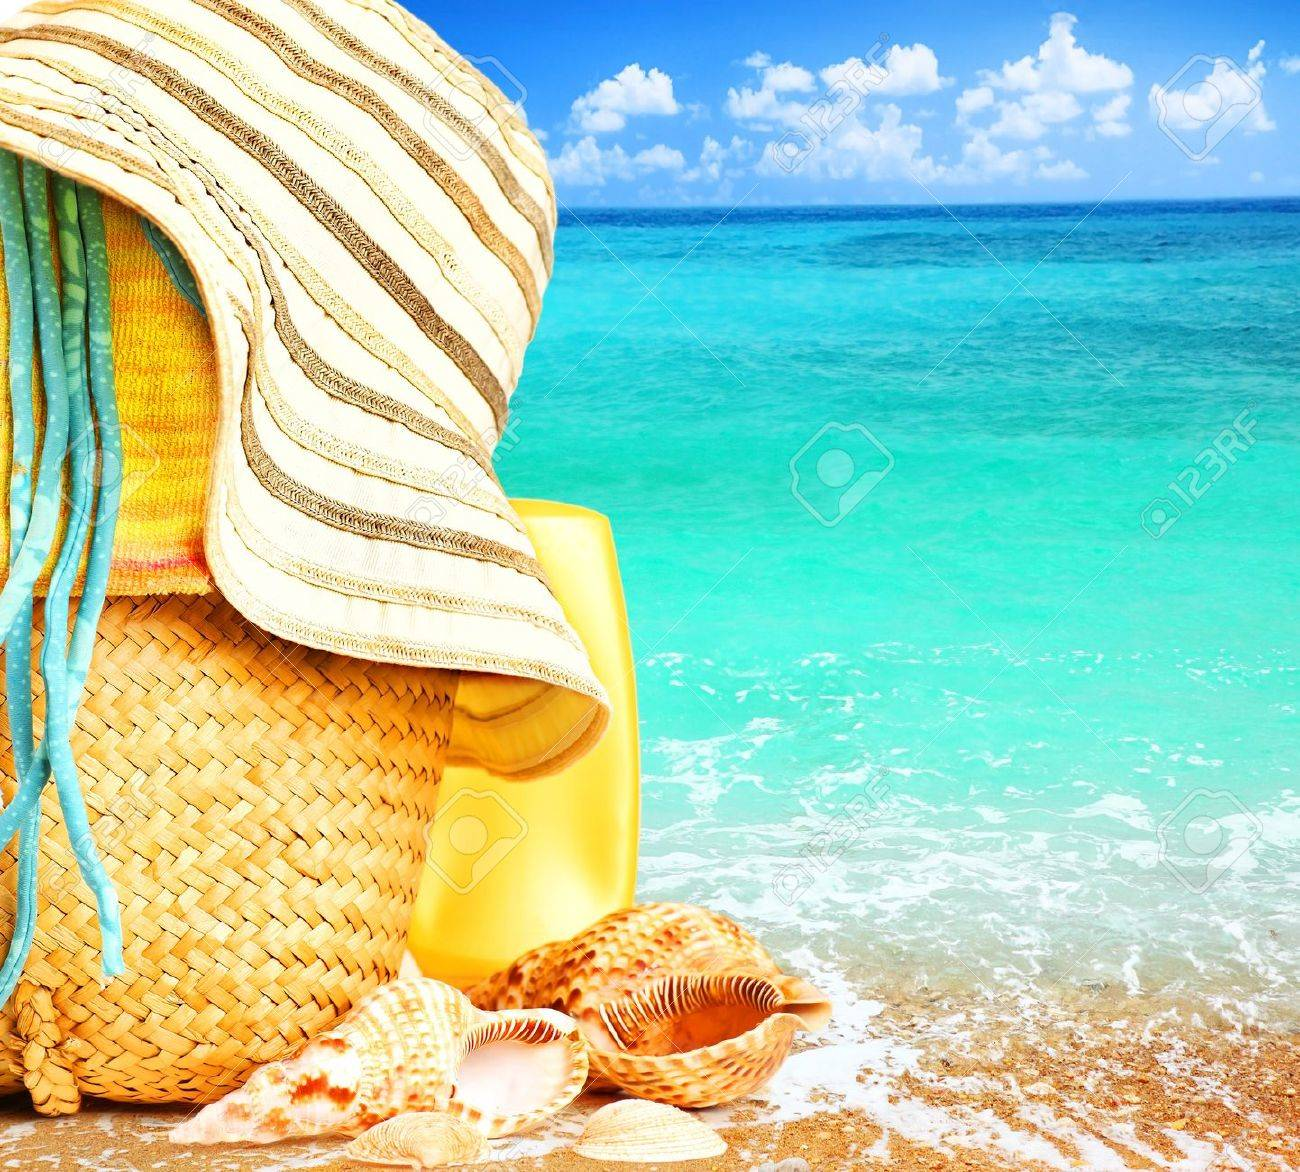 Beach items over blue sea conceptual image of summertime vacation & holidays Stock Photo - 9059357